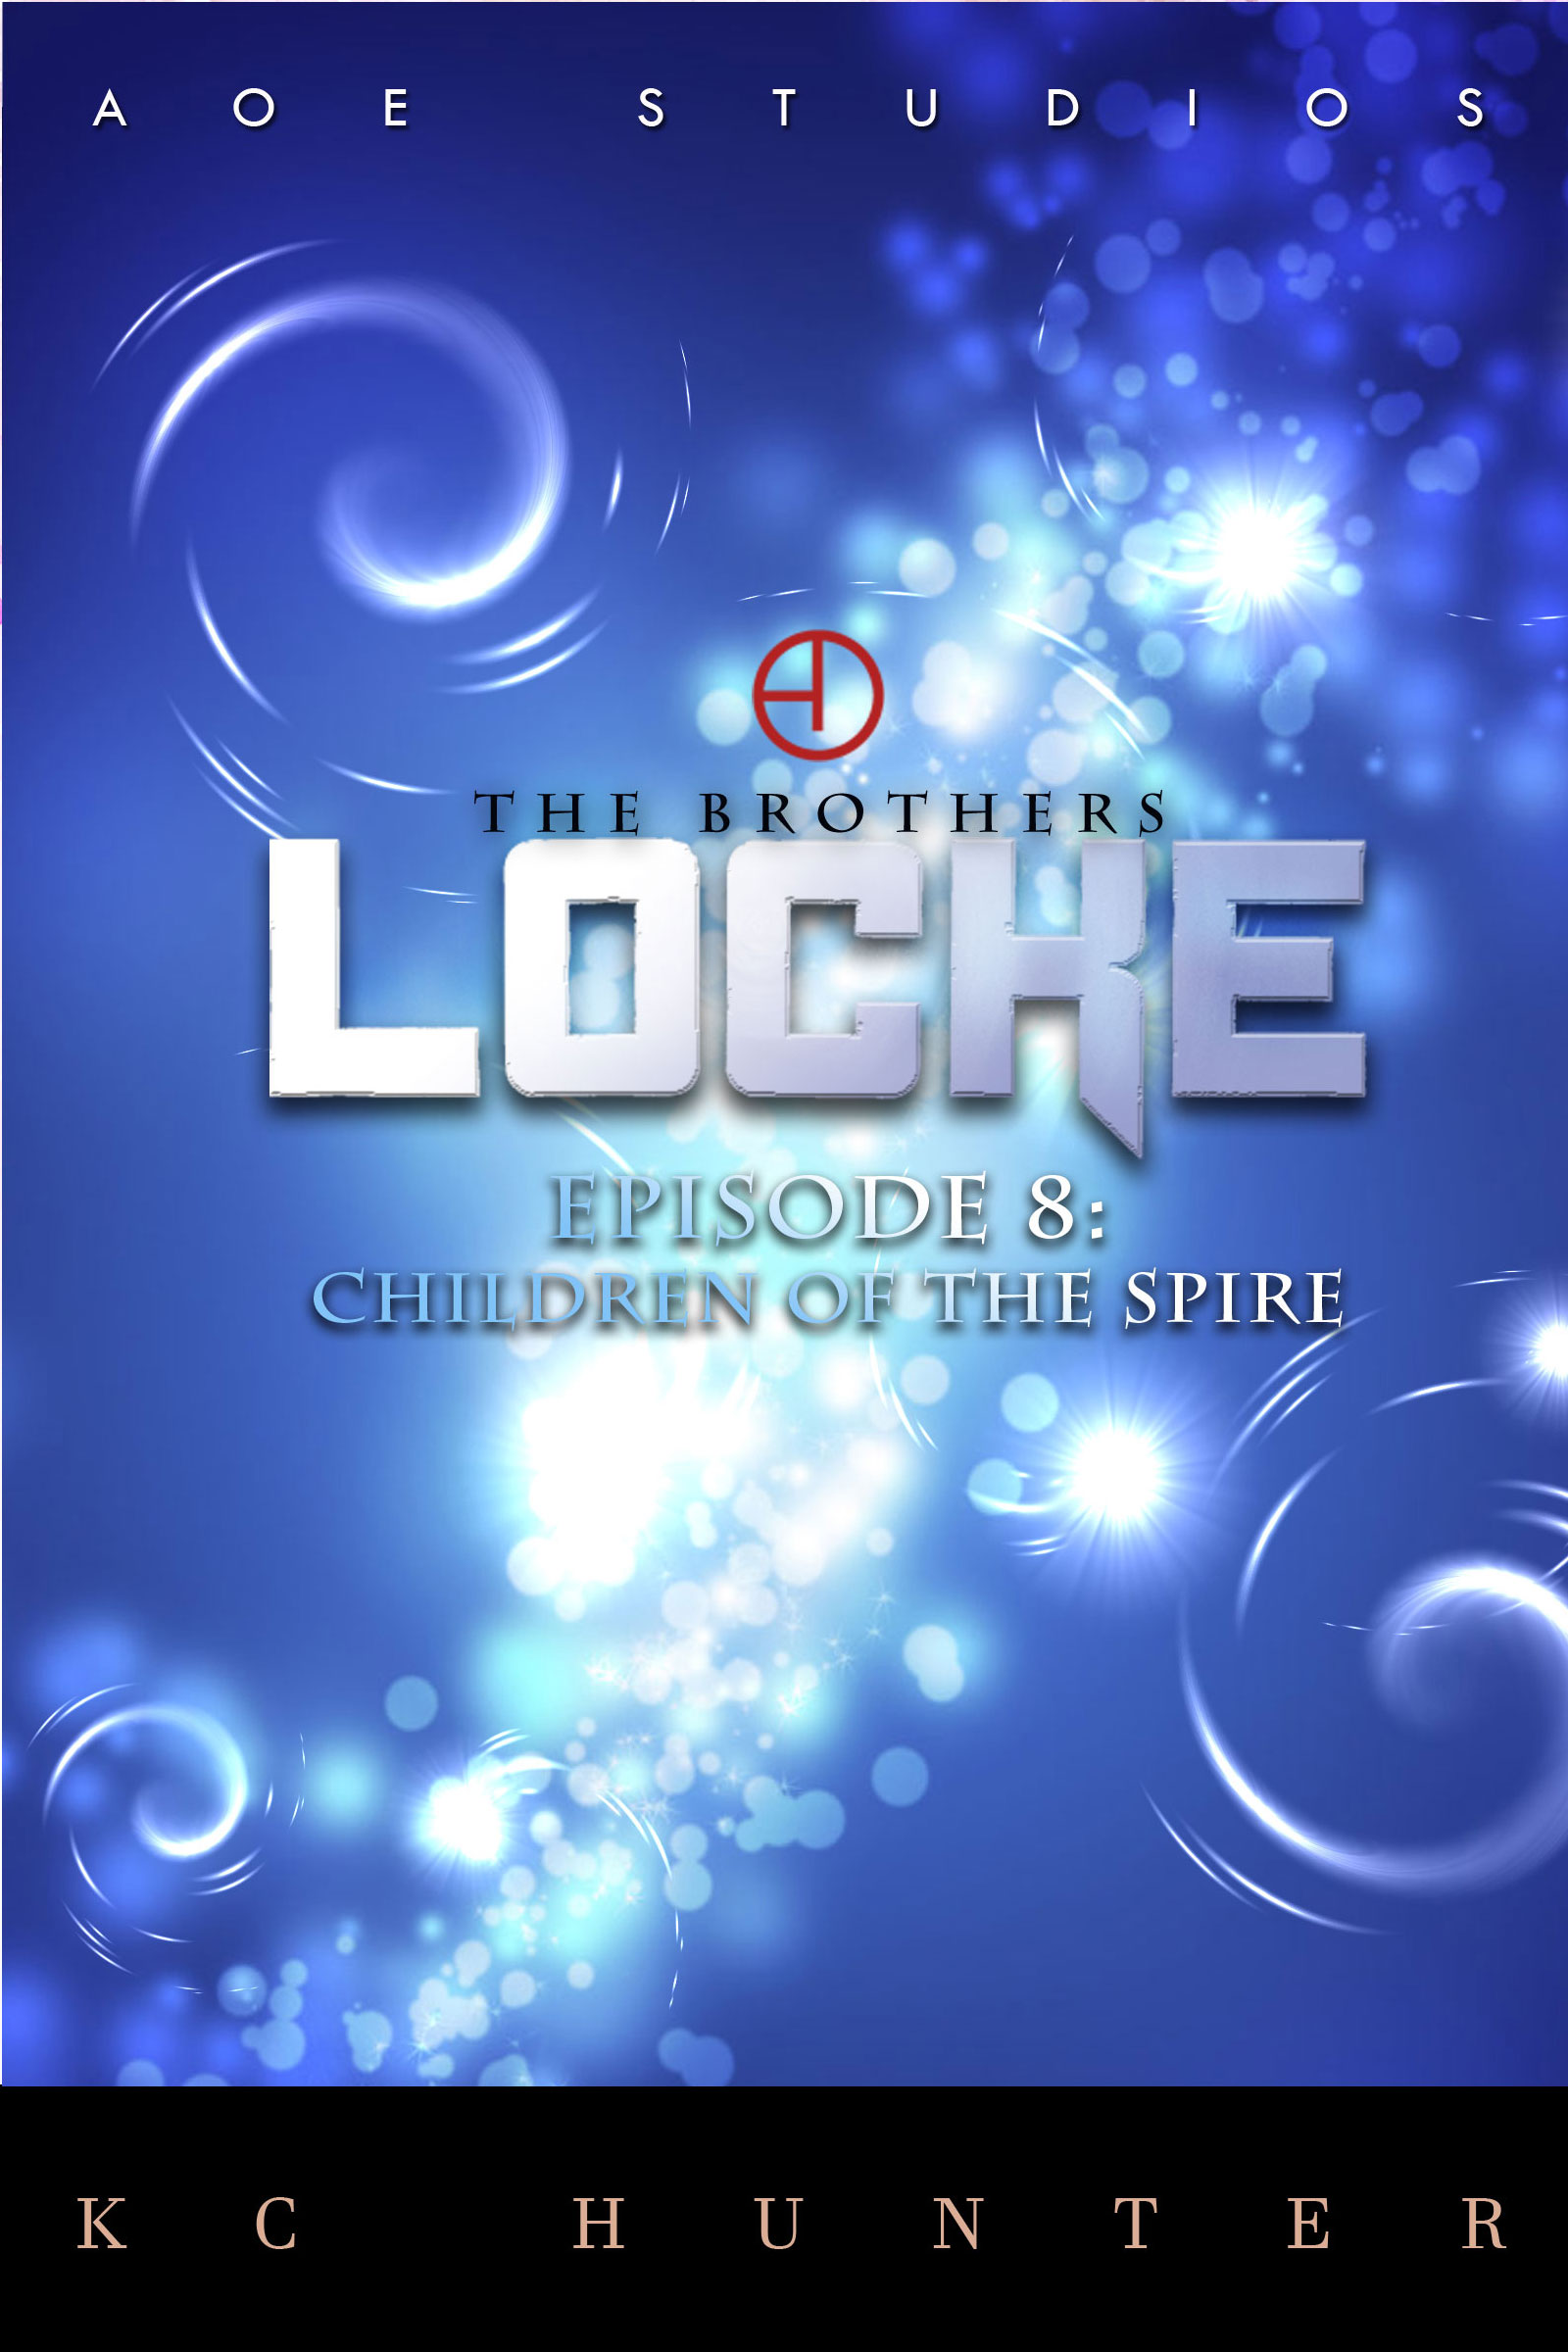 The Brothers Locke Episode 8 Book Cover Image